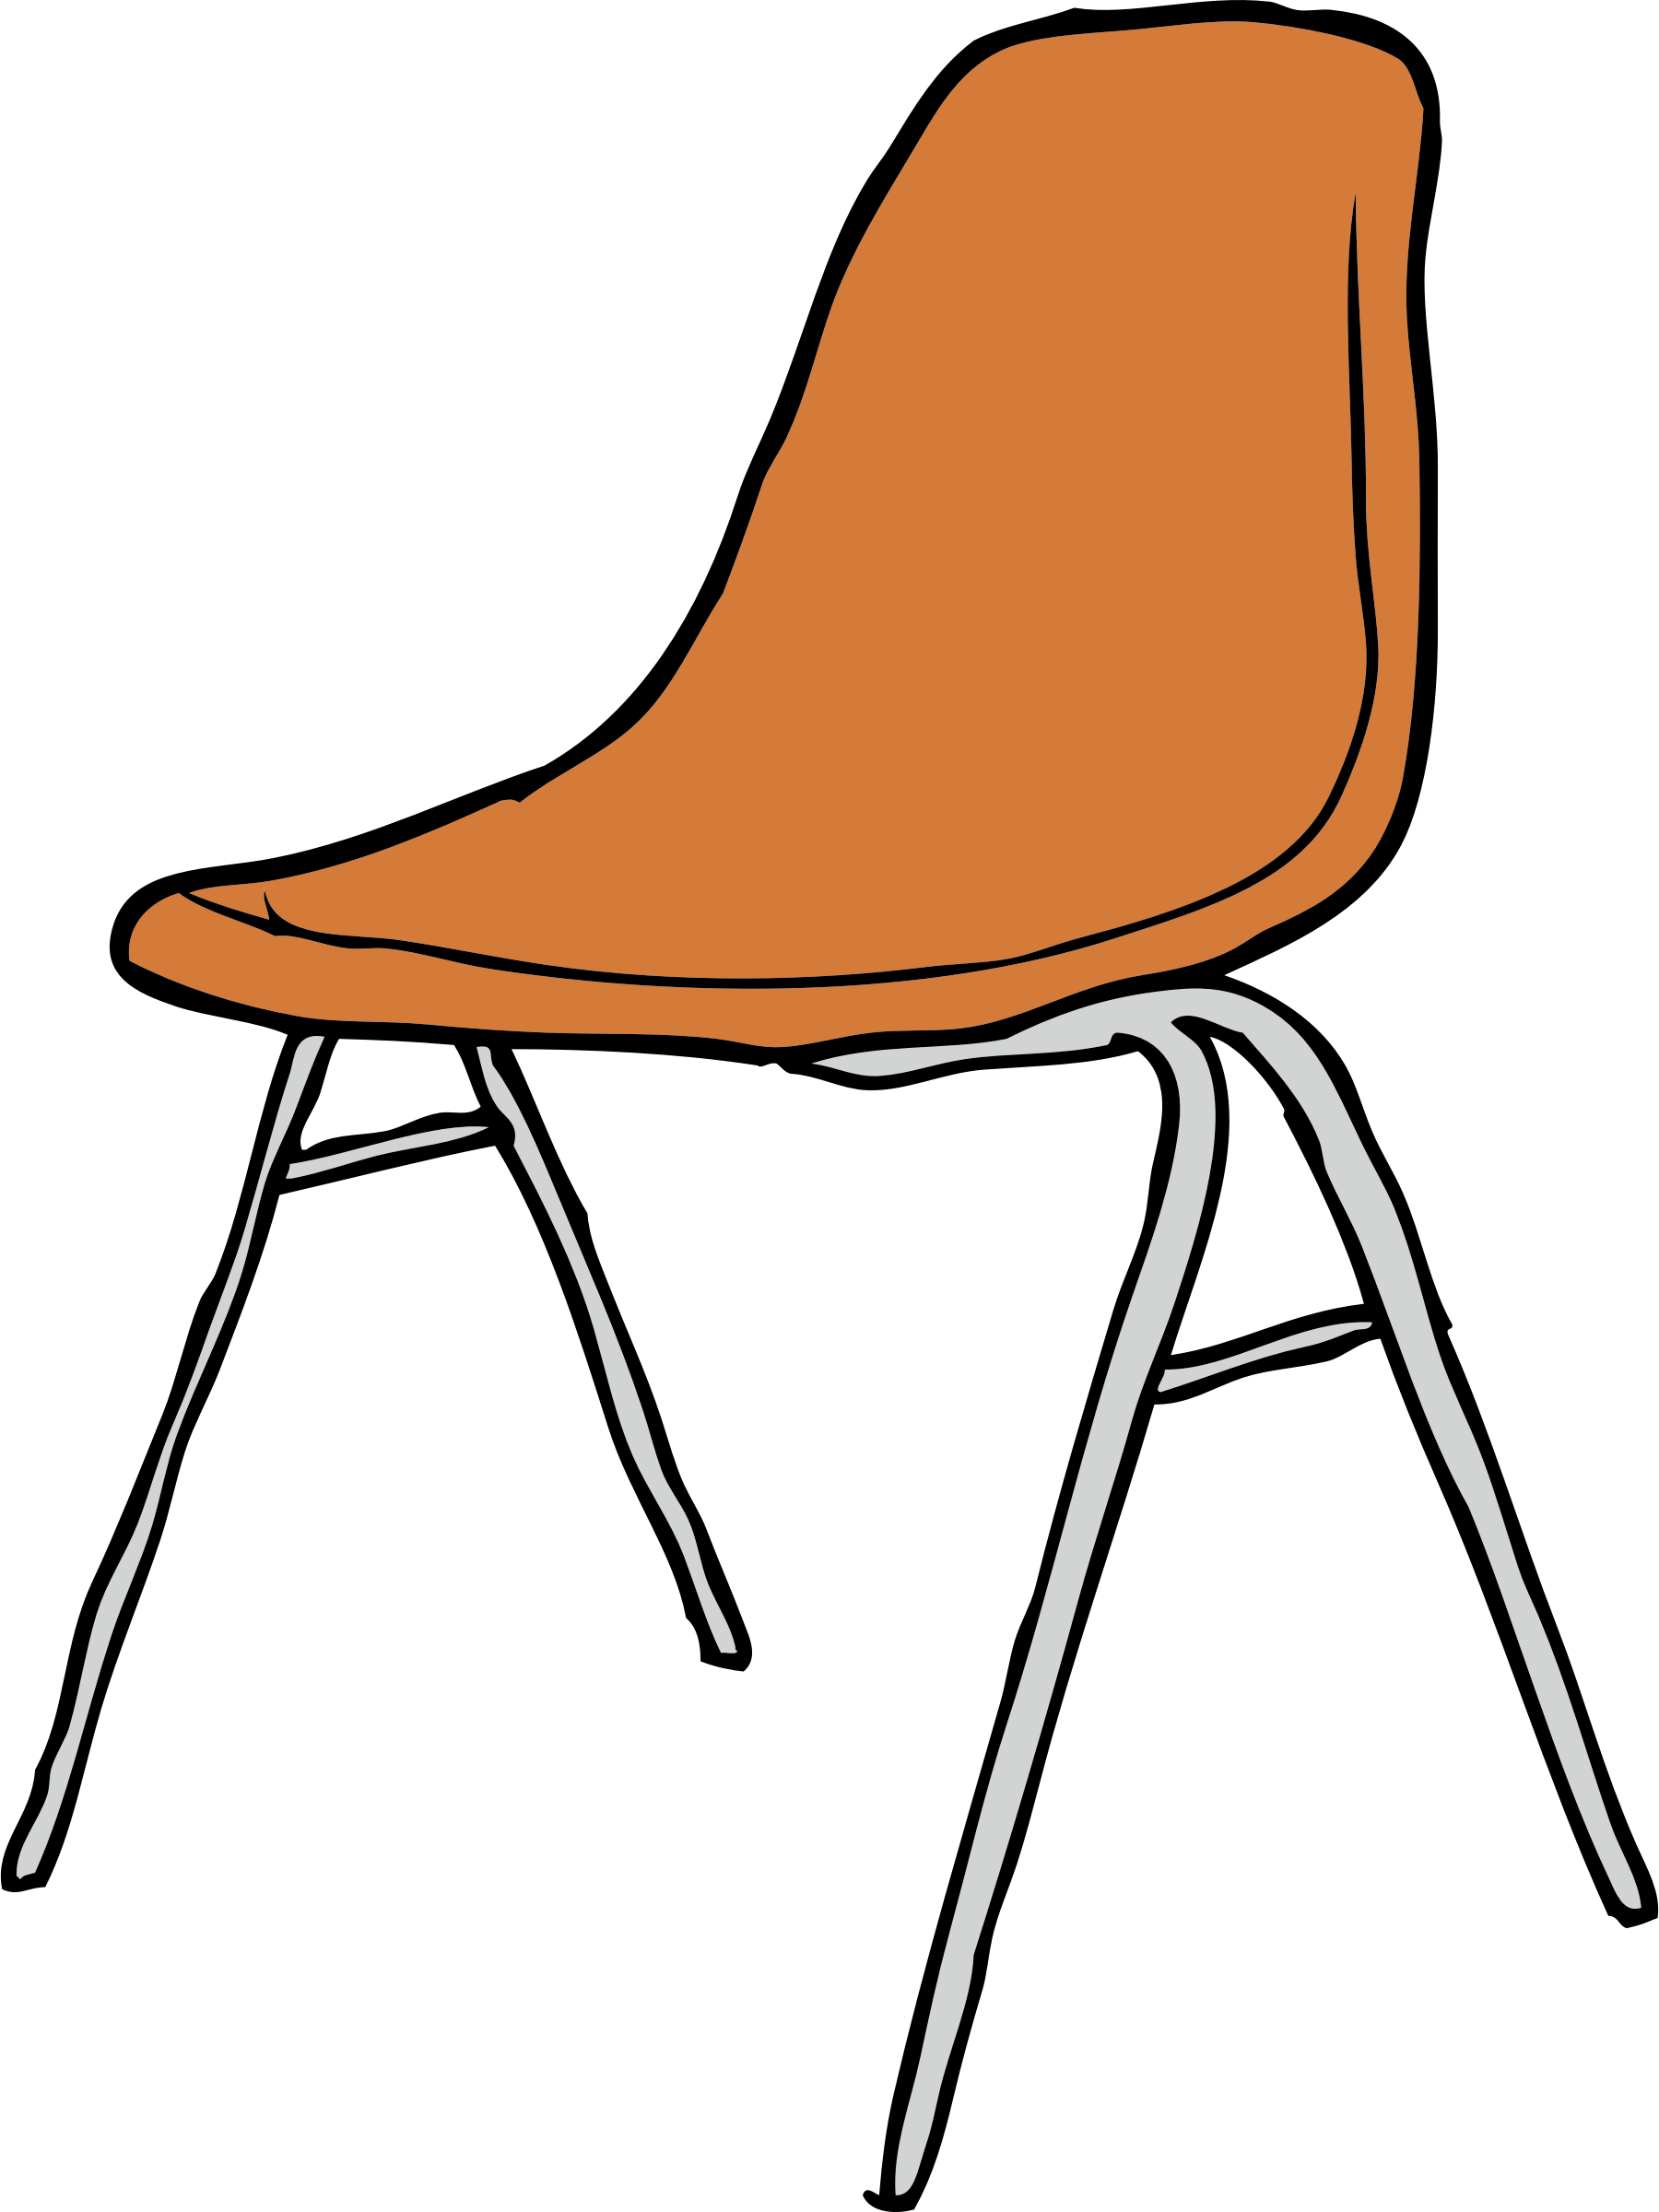 Modern Chair 3/4 Angle by SteveLambert